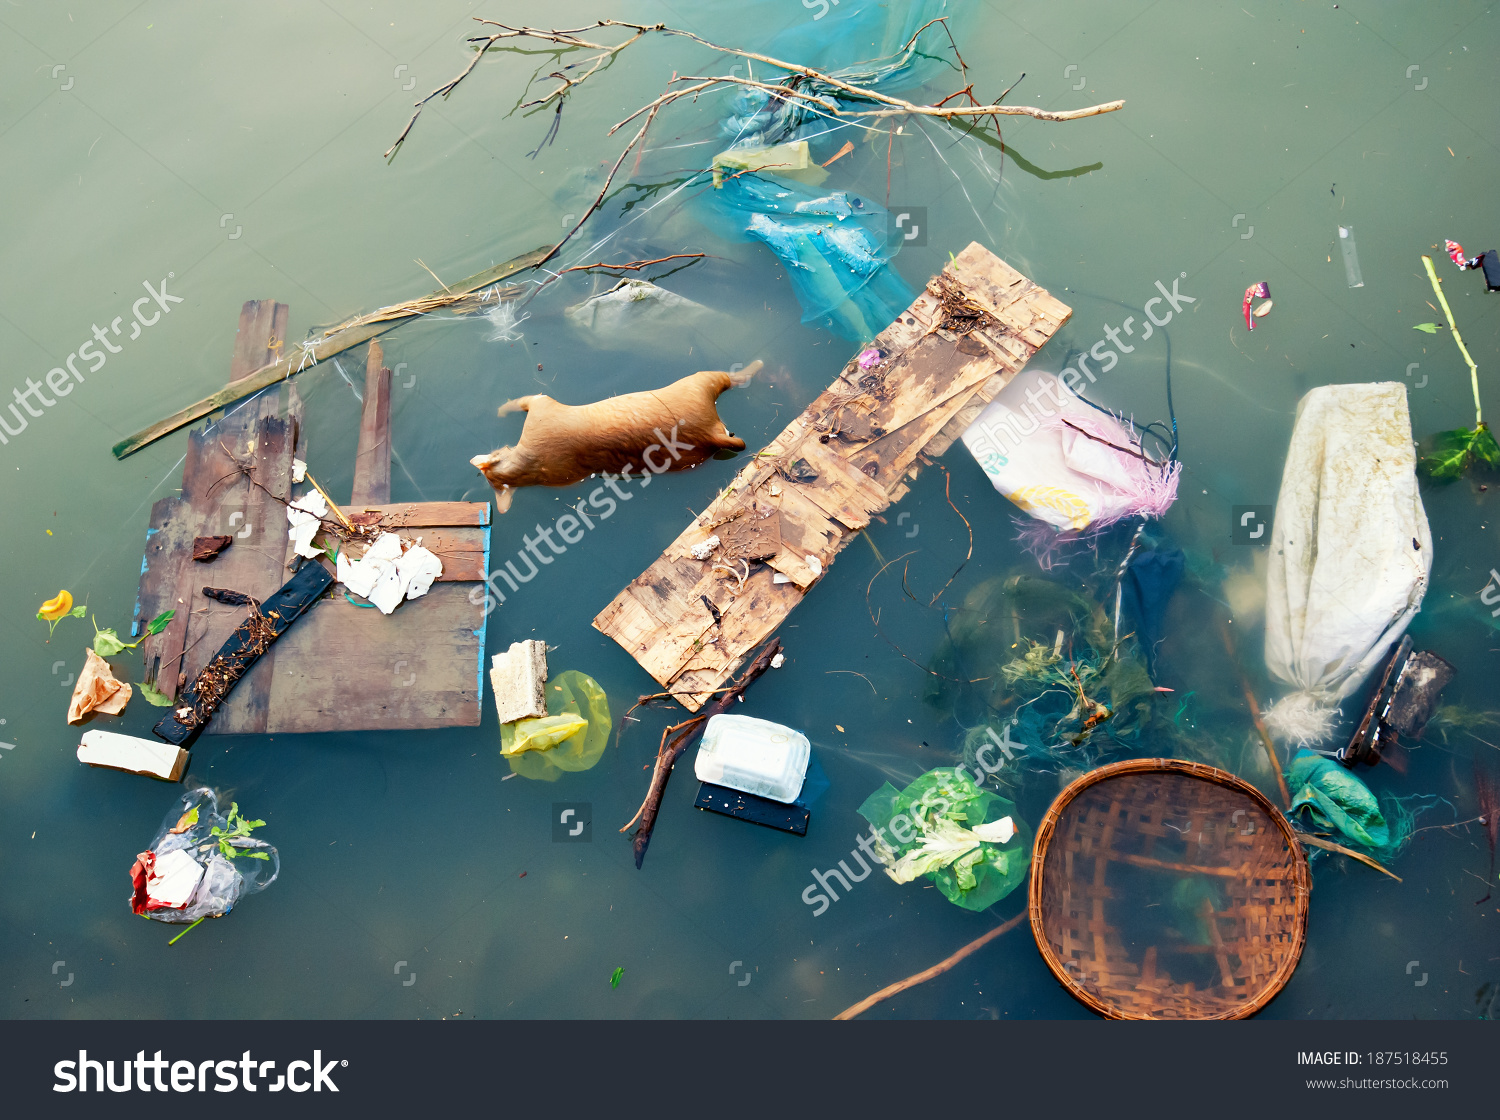 Water Pollution Plastic Garbage Dirty Trash Stock Photo 187518455.